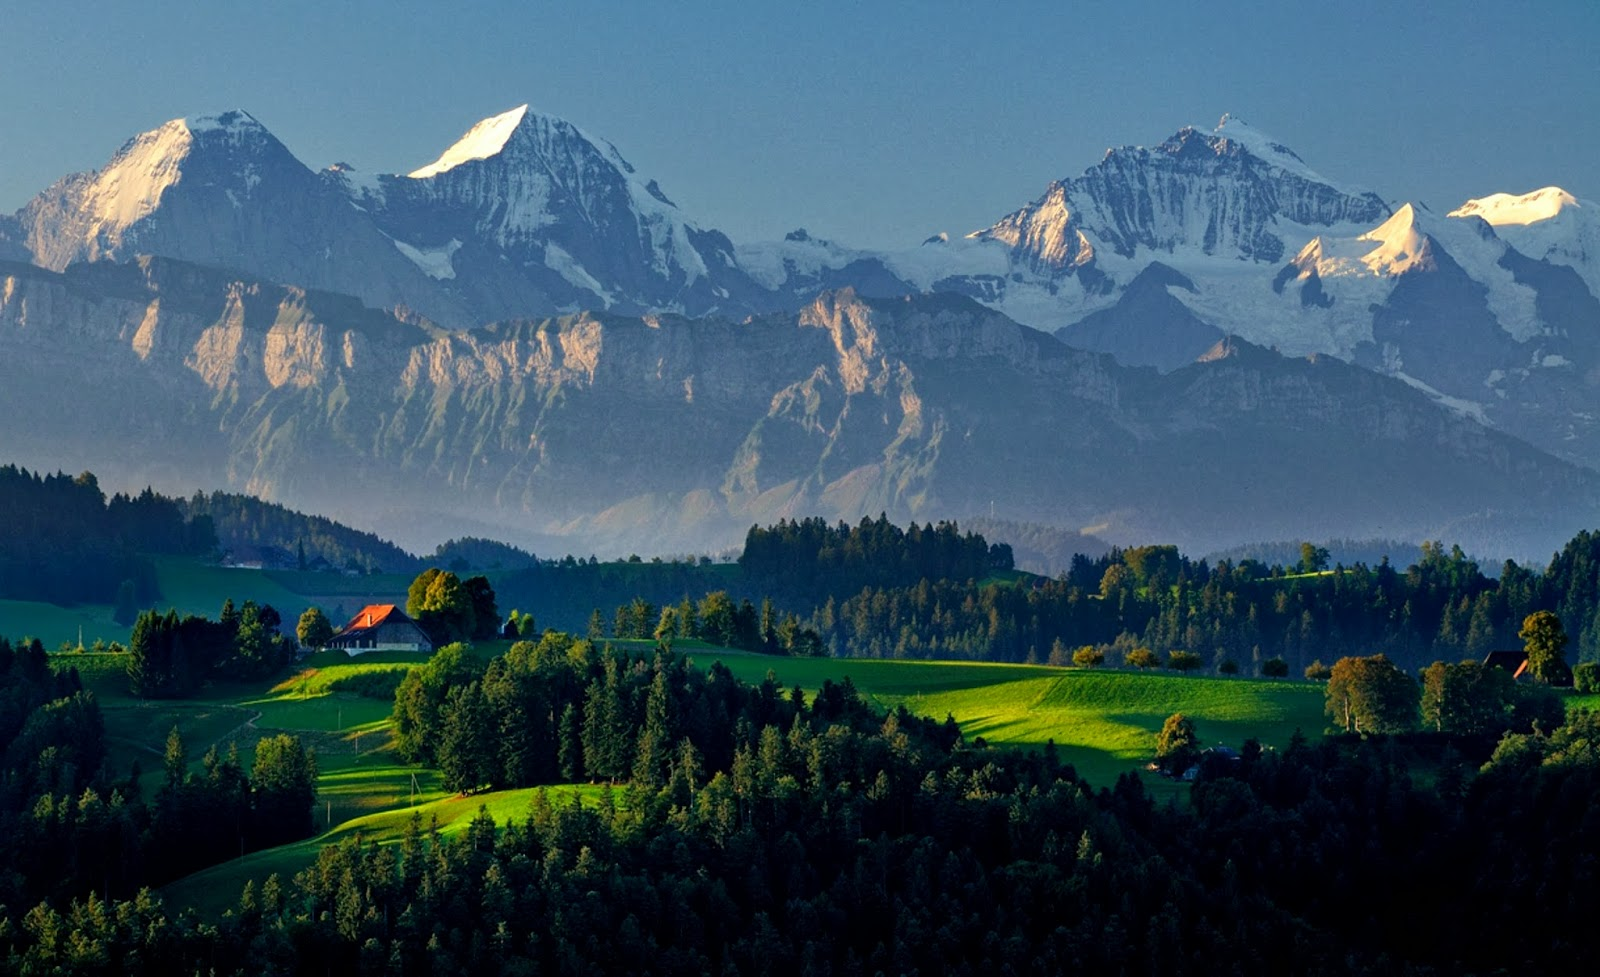 Gorgeous Mountains and Green Valleys in Switzerland 657.94 Kb